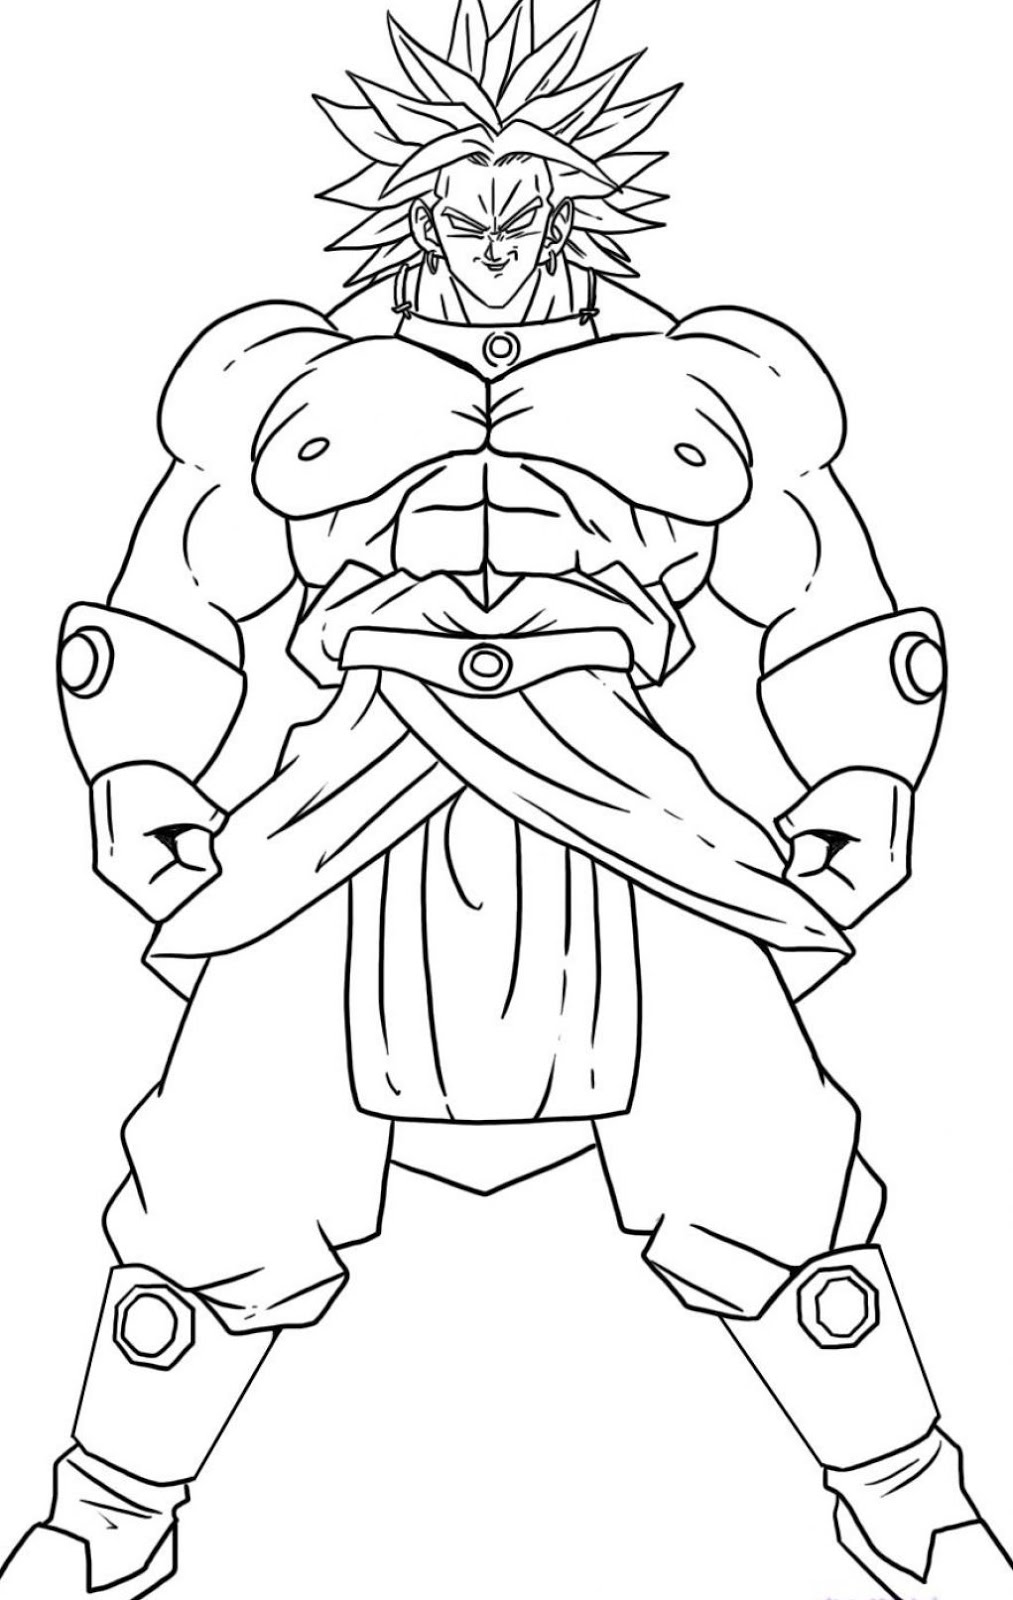 Dragon ball z coloring page to print and color for free broly super saiyajin